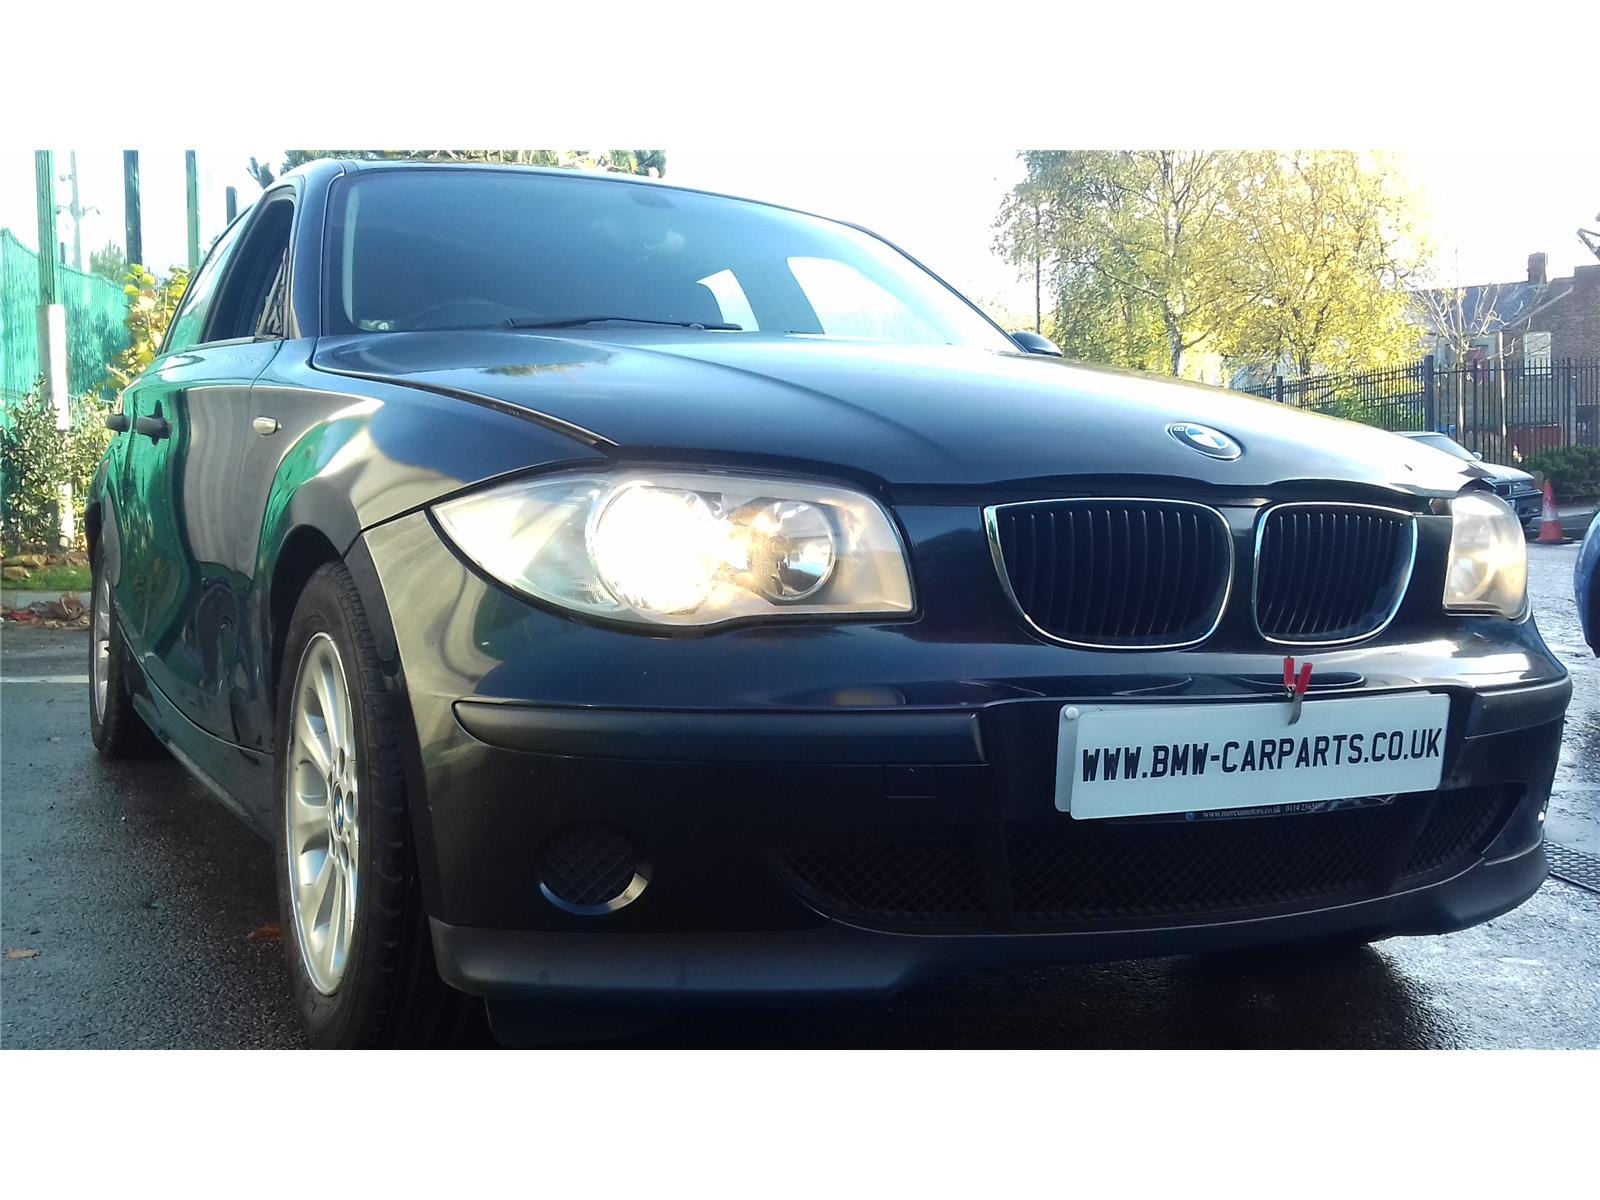 2005 bmw 1 series 118d es 5 door hatchback diesel manual breaking for used and spare parts. Black Bedroom Furniture Sets. Home Design Ideas